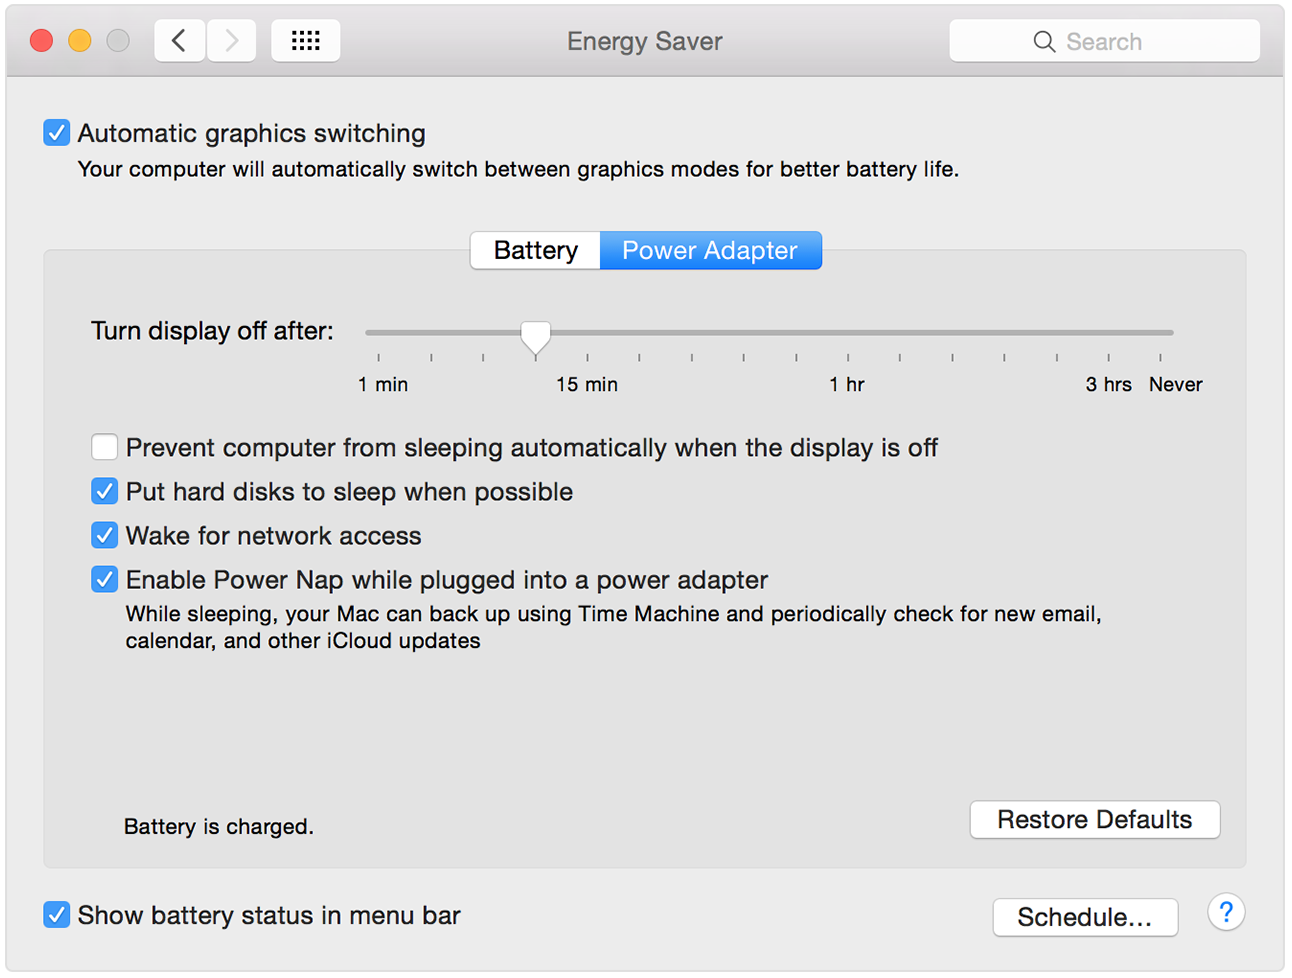 Osx Has Its Own Graphics Switching Option In The 'energy Saver' Tool In The  Settings Dialogue Unchecking This Allows The Game To Run